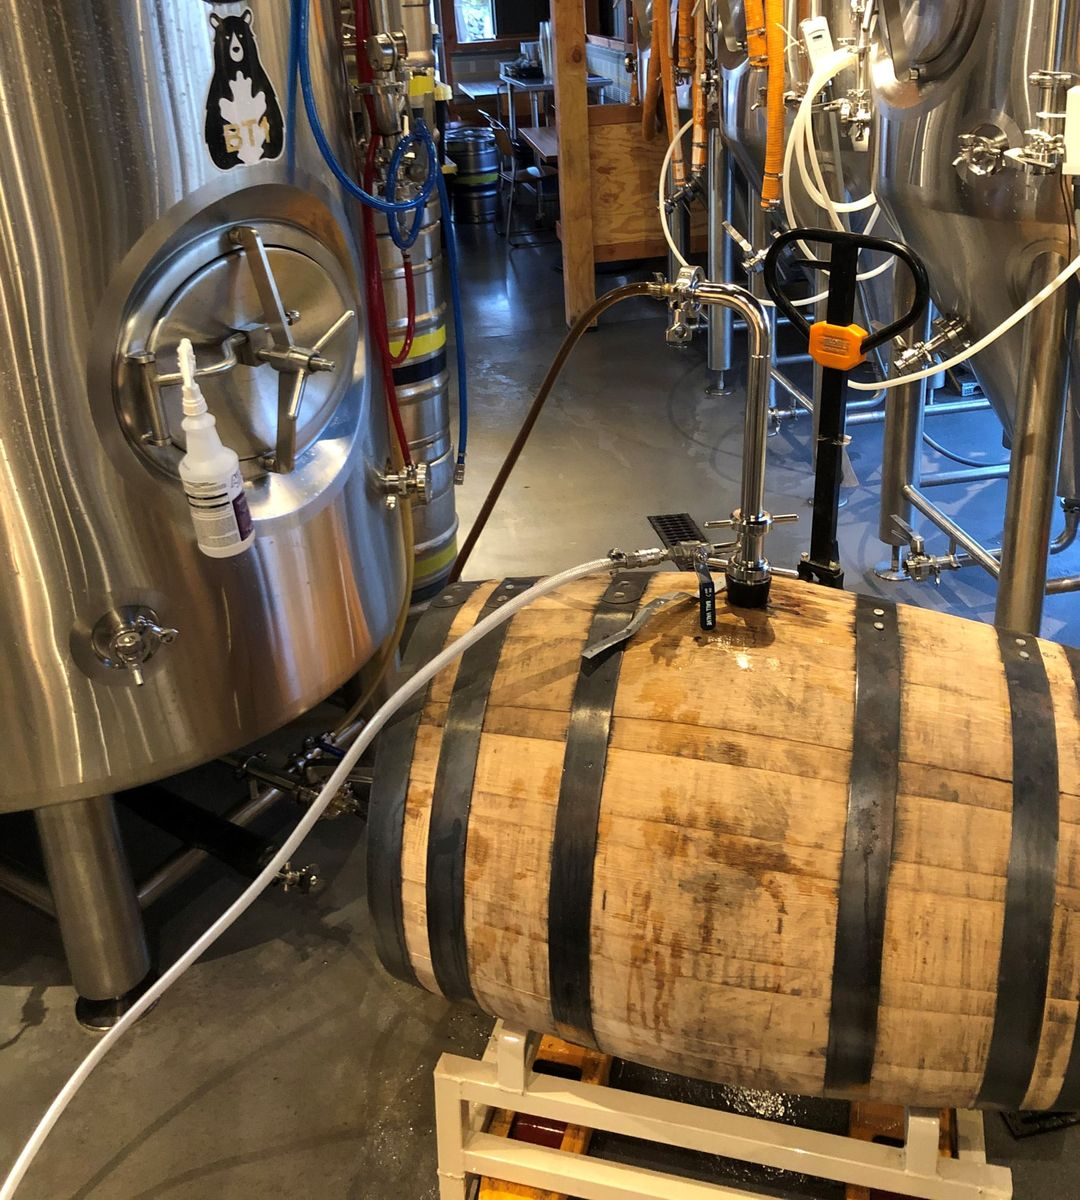 Stout being transferred from barrel to tank at Ike & Oak